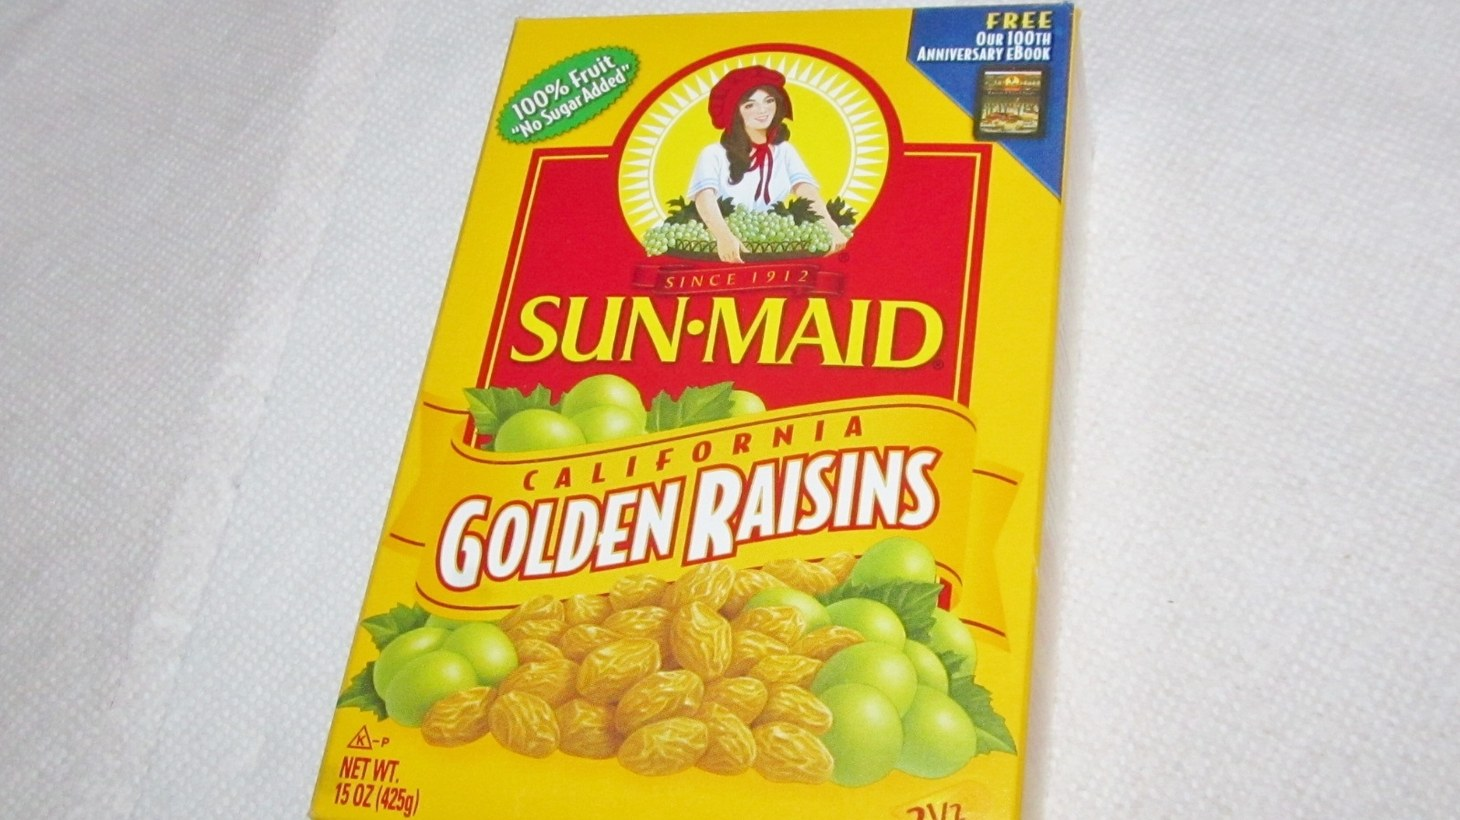 Sun-Maid golden raisins.